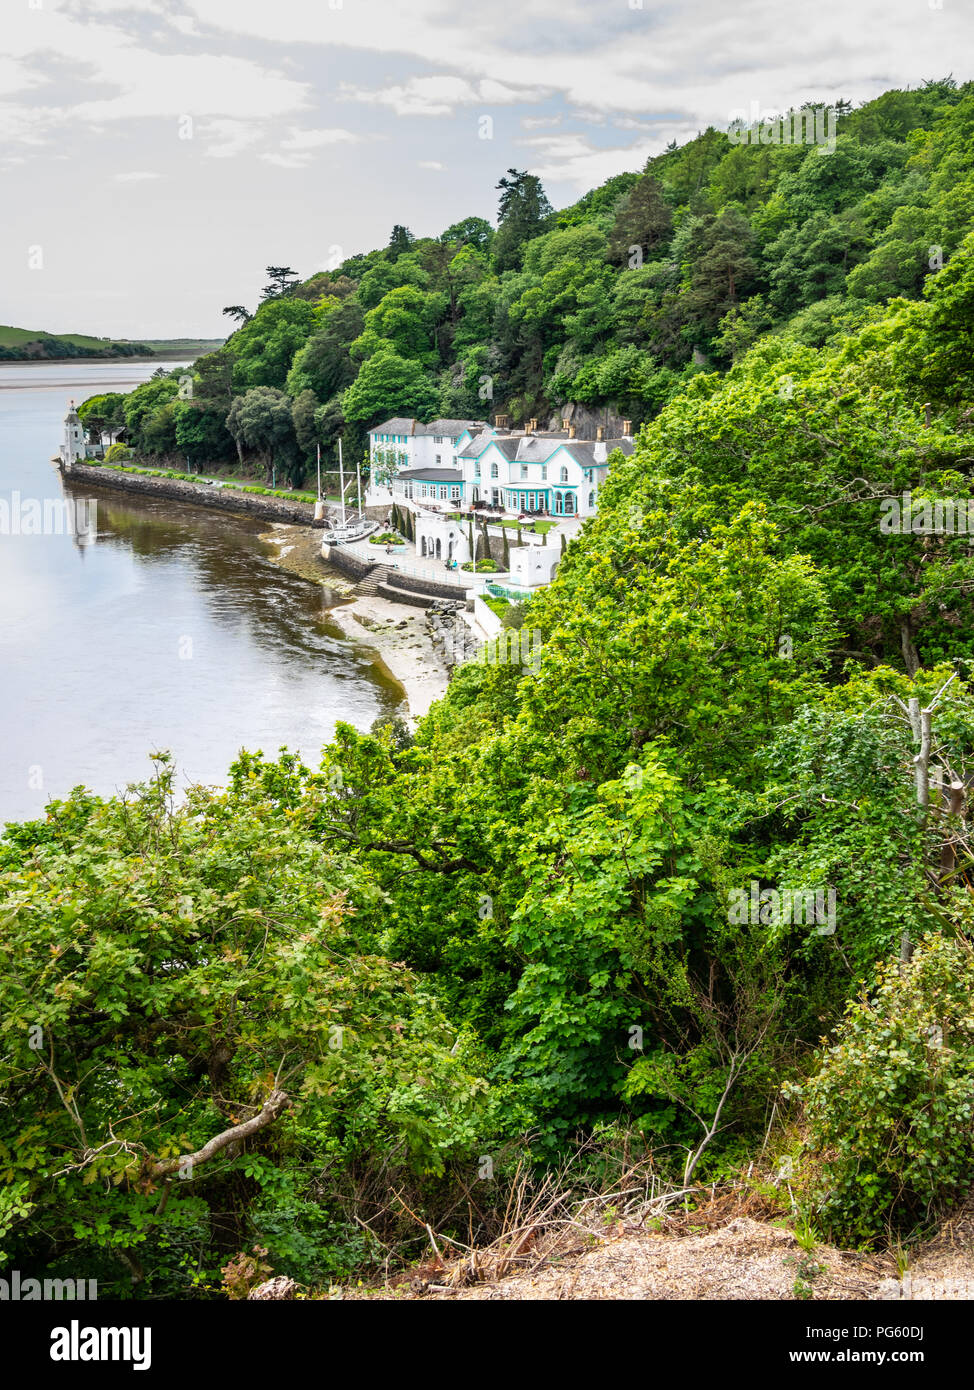 Portmeirion Hotel nestled on the Dwyryd River, at Portmeirion, created by Clough Williams-Ellis, Gwynedd, North Wales, UK. Stock Photo